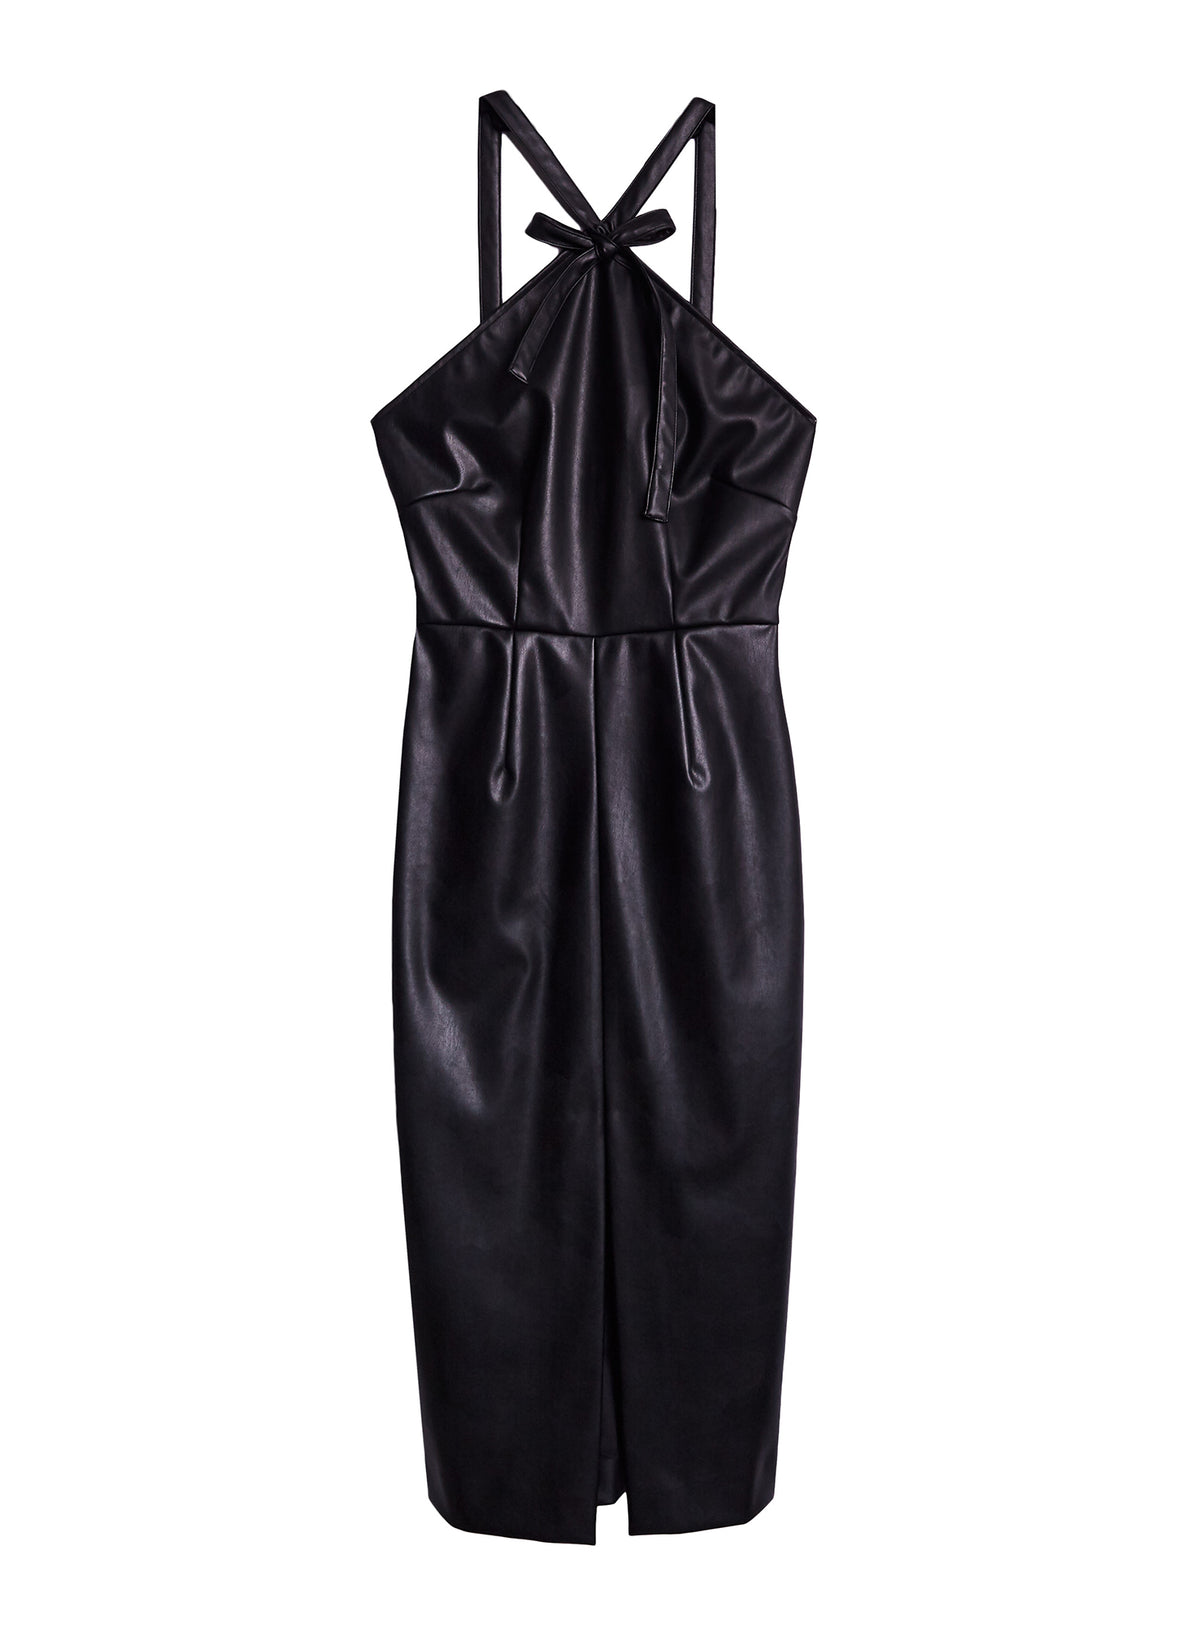 Vegan Leather Dress with Bow